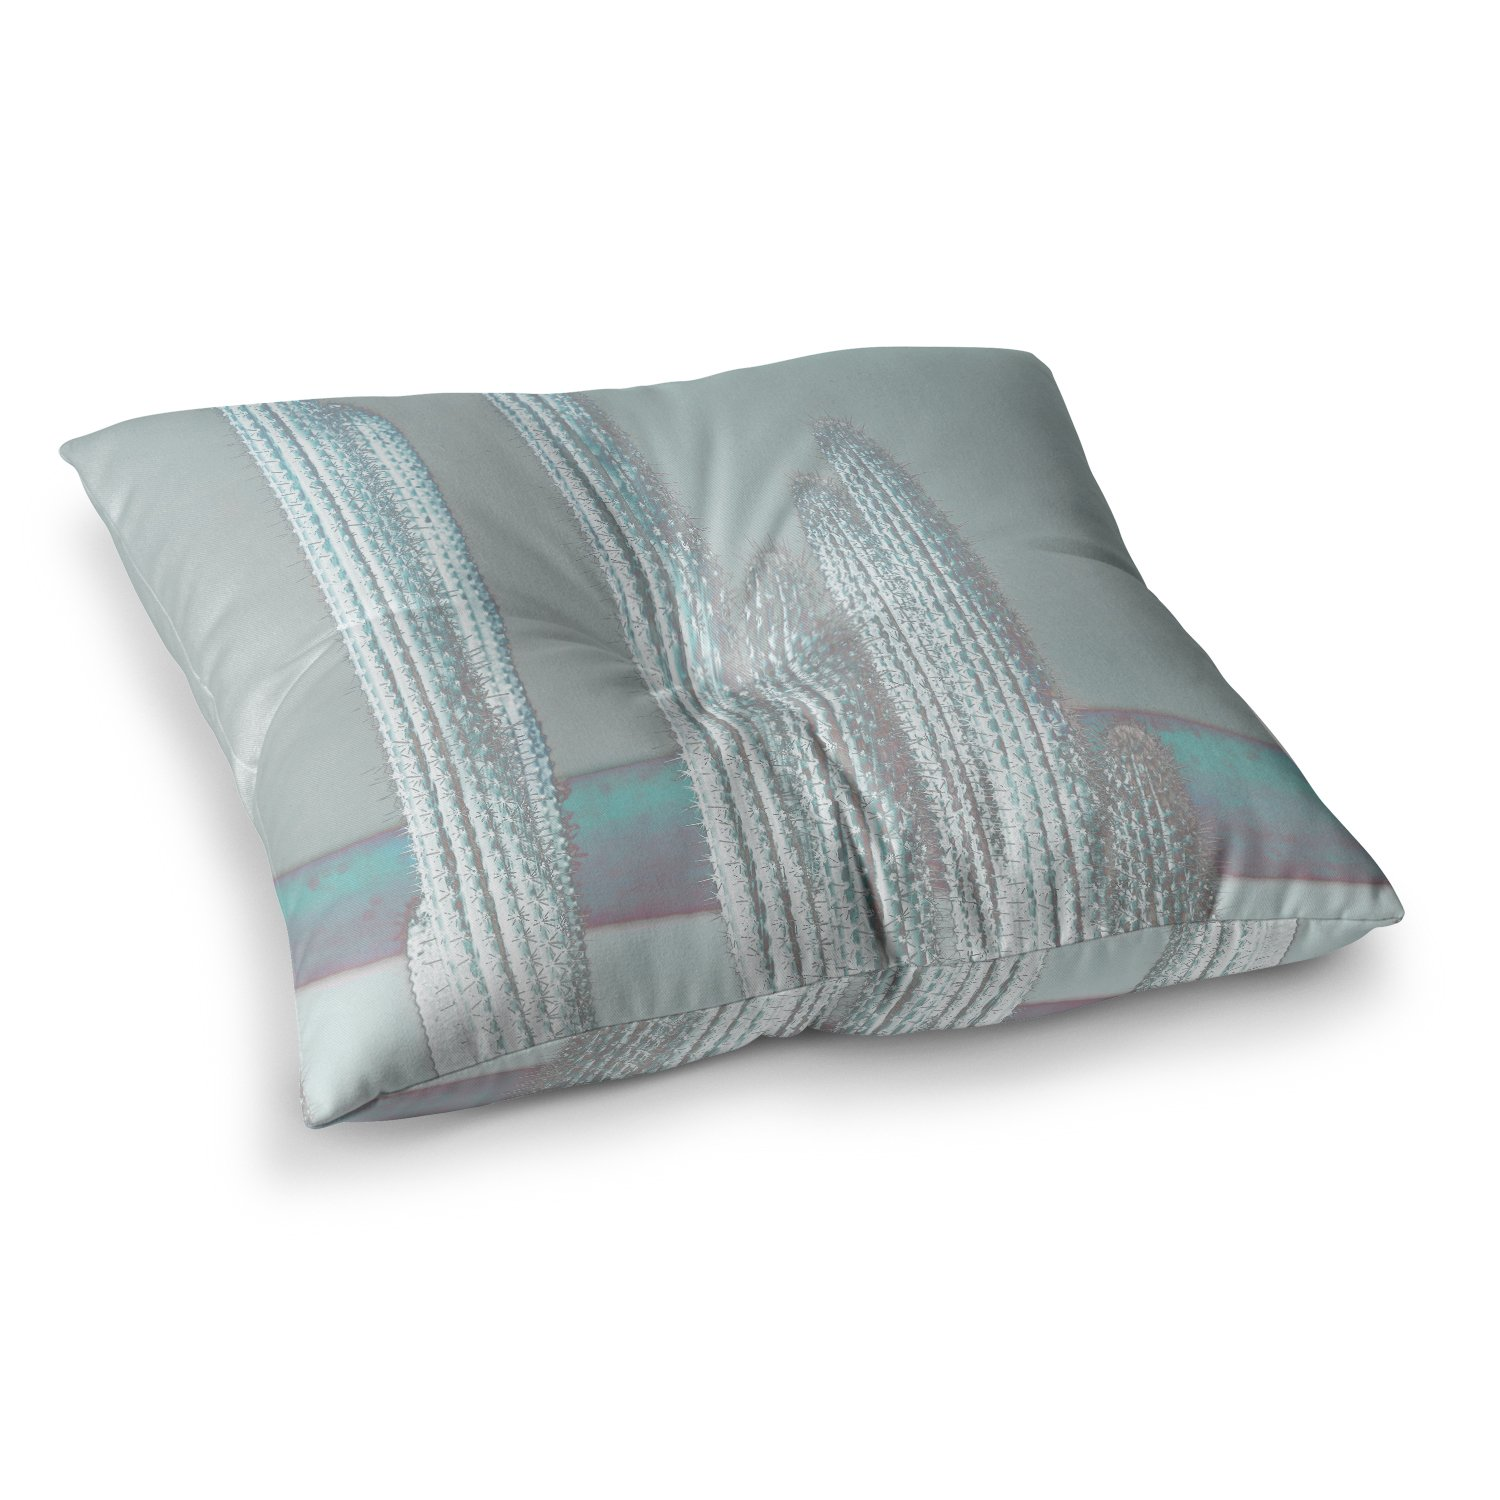 23 x 23 Square Floor Pillow Kess InHouse Project M Blue Tooth Navy White